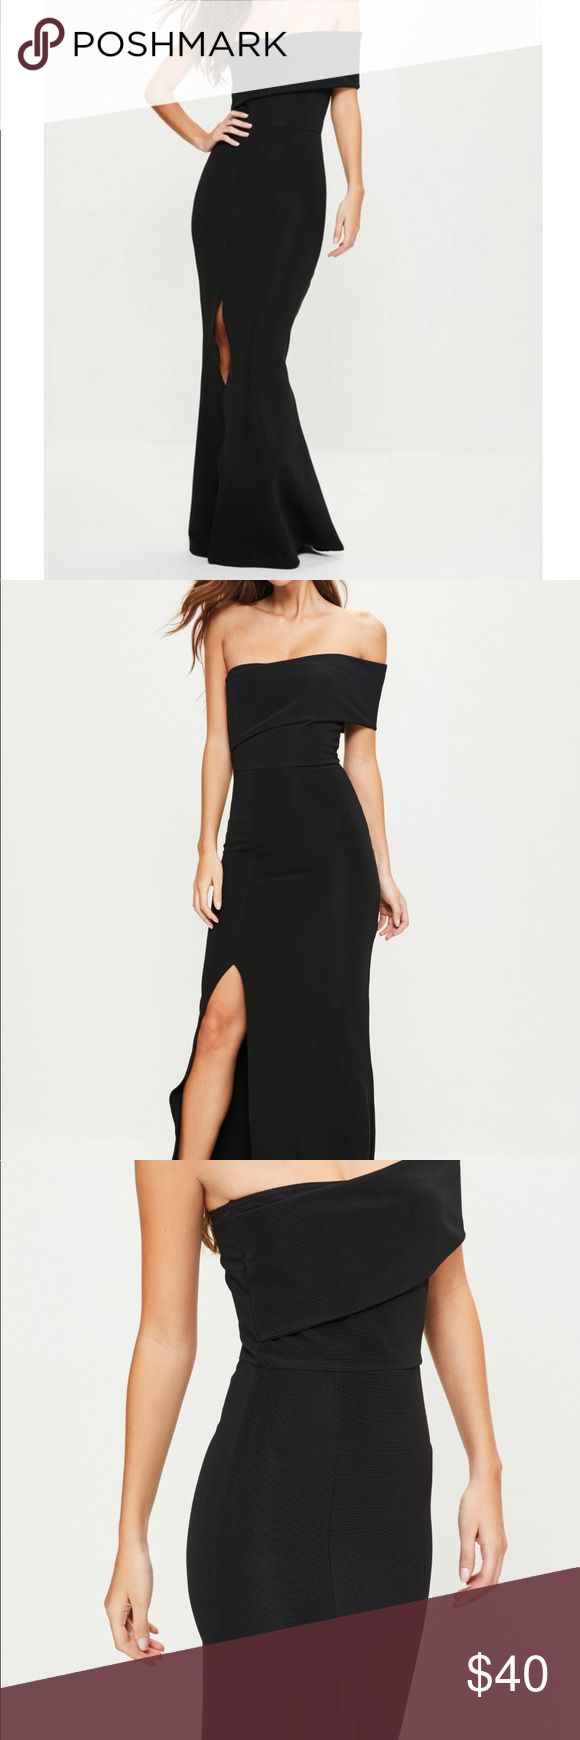 Black one shoulder maxi dress- never worn Brand new never worn misguided Dresses Maxi